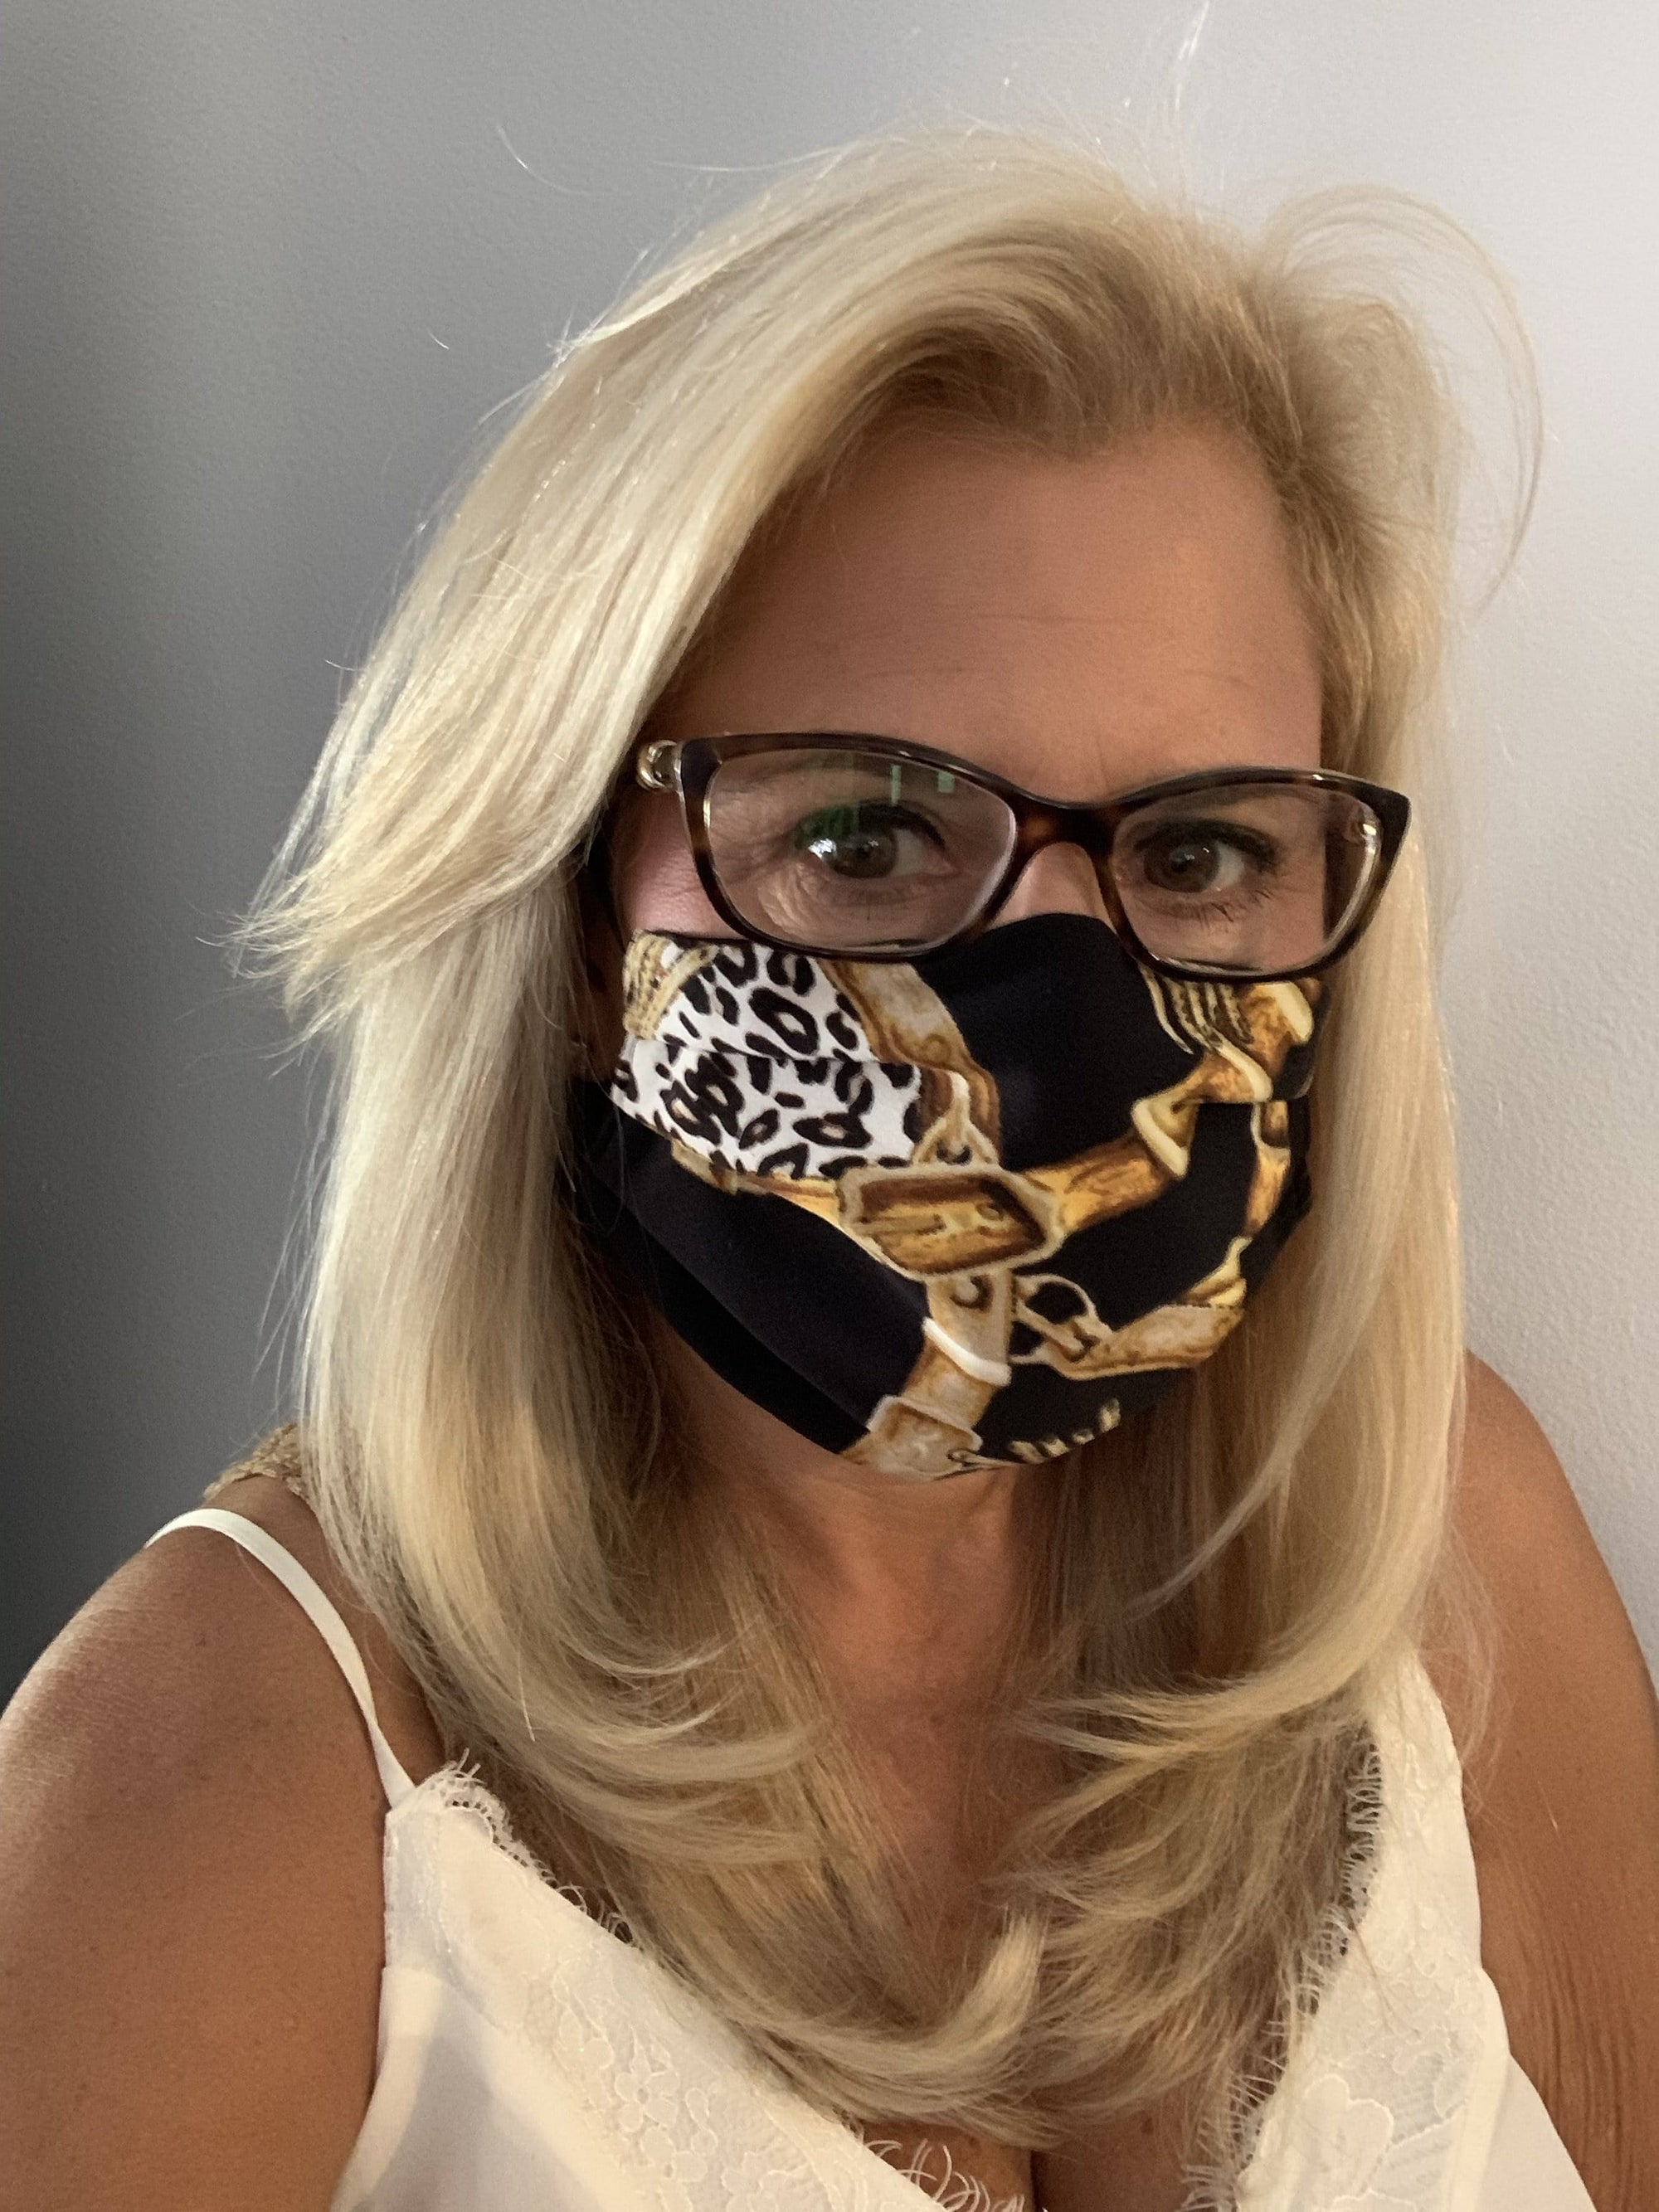 Stacy Bradley Design Face Mask Equestrian Animal Print equestrian team apparel online tack store mobile tack store custom farm apparel custom show stable clothing equestrian lifestyle horse show clothing riding clothes horses equestrian tack store